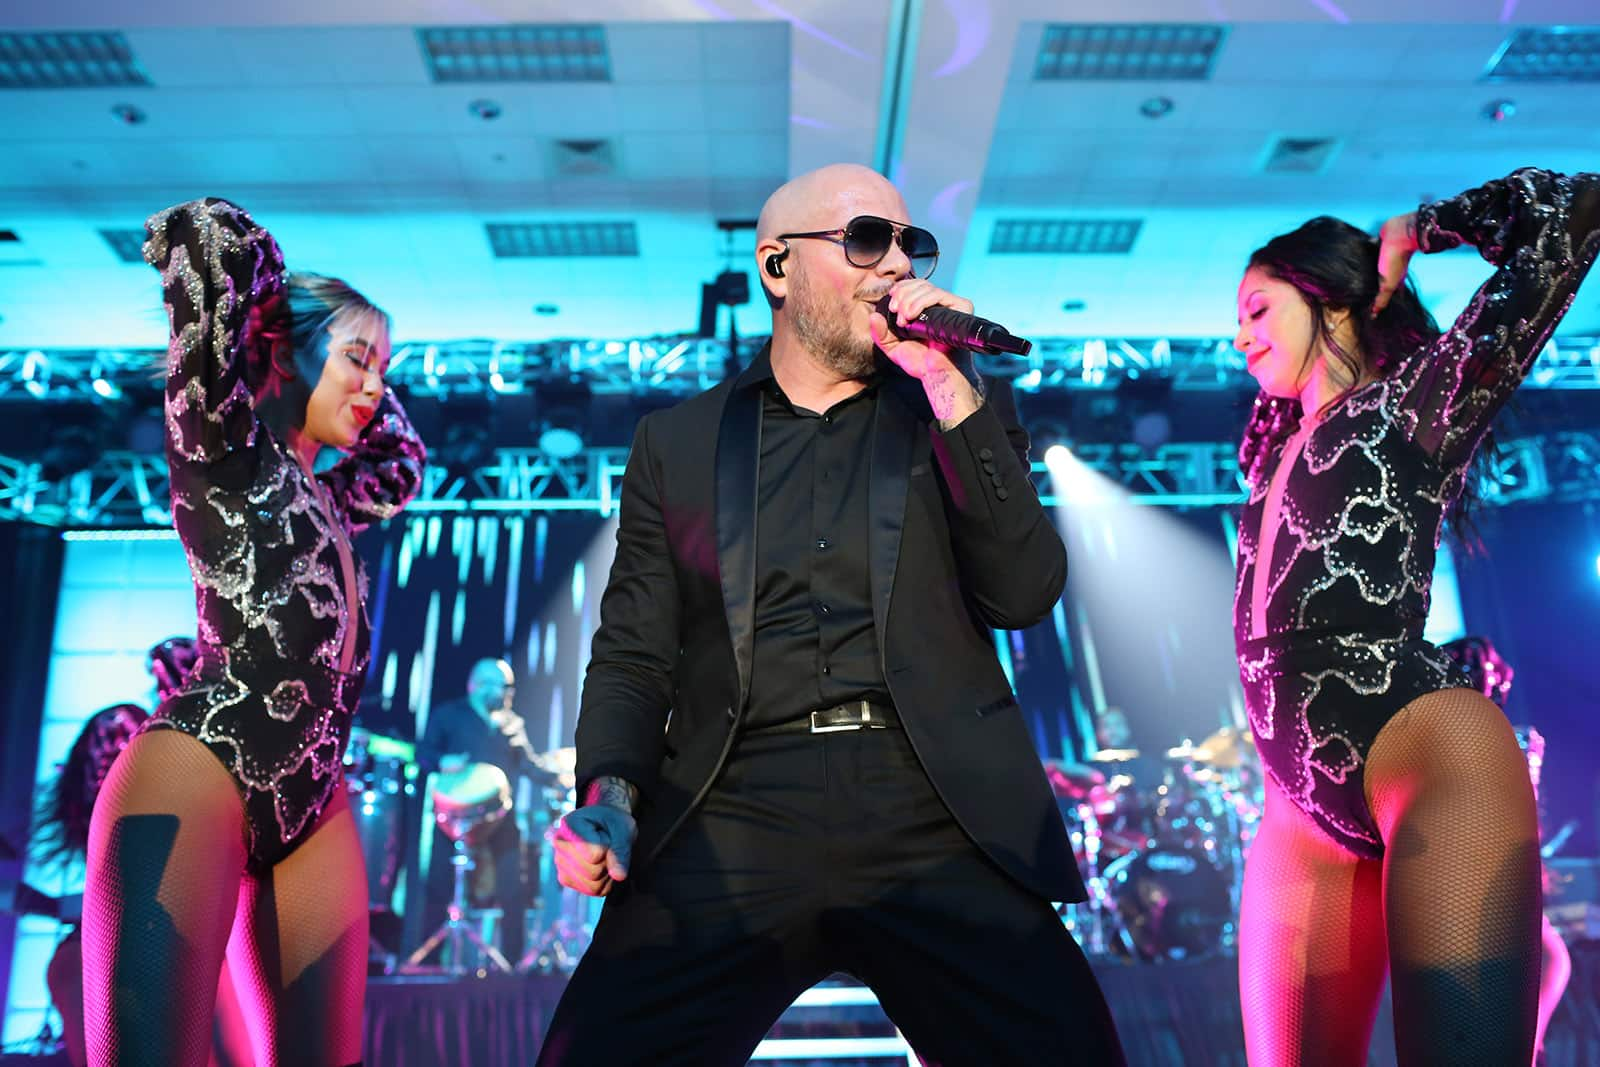 Pitbull Performs At Cruiseworld 2018 Event Hosted By